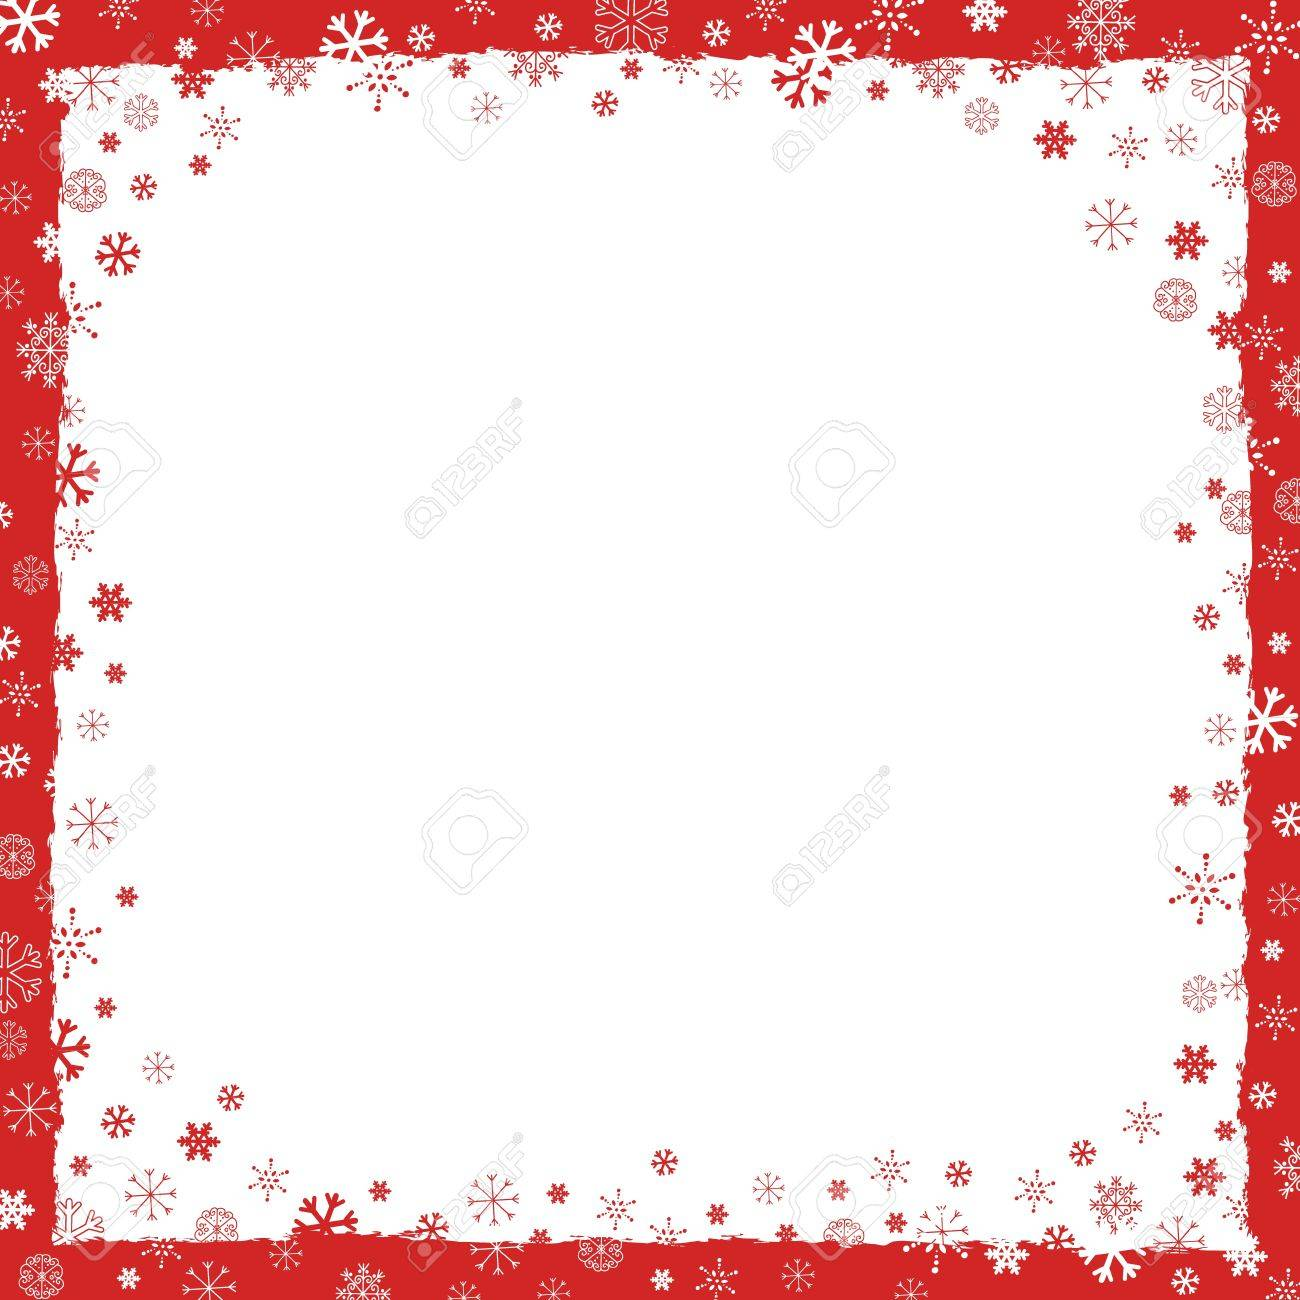 new year christmas background with snowflakes border and grunge elements stock vector 16034723